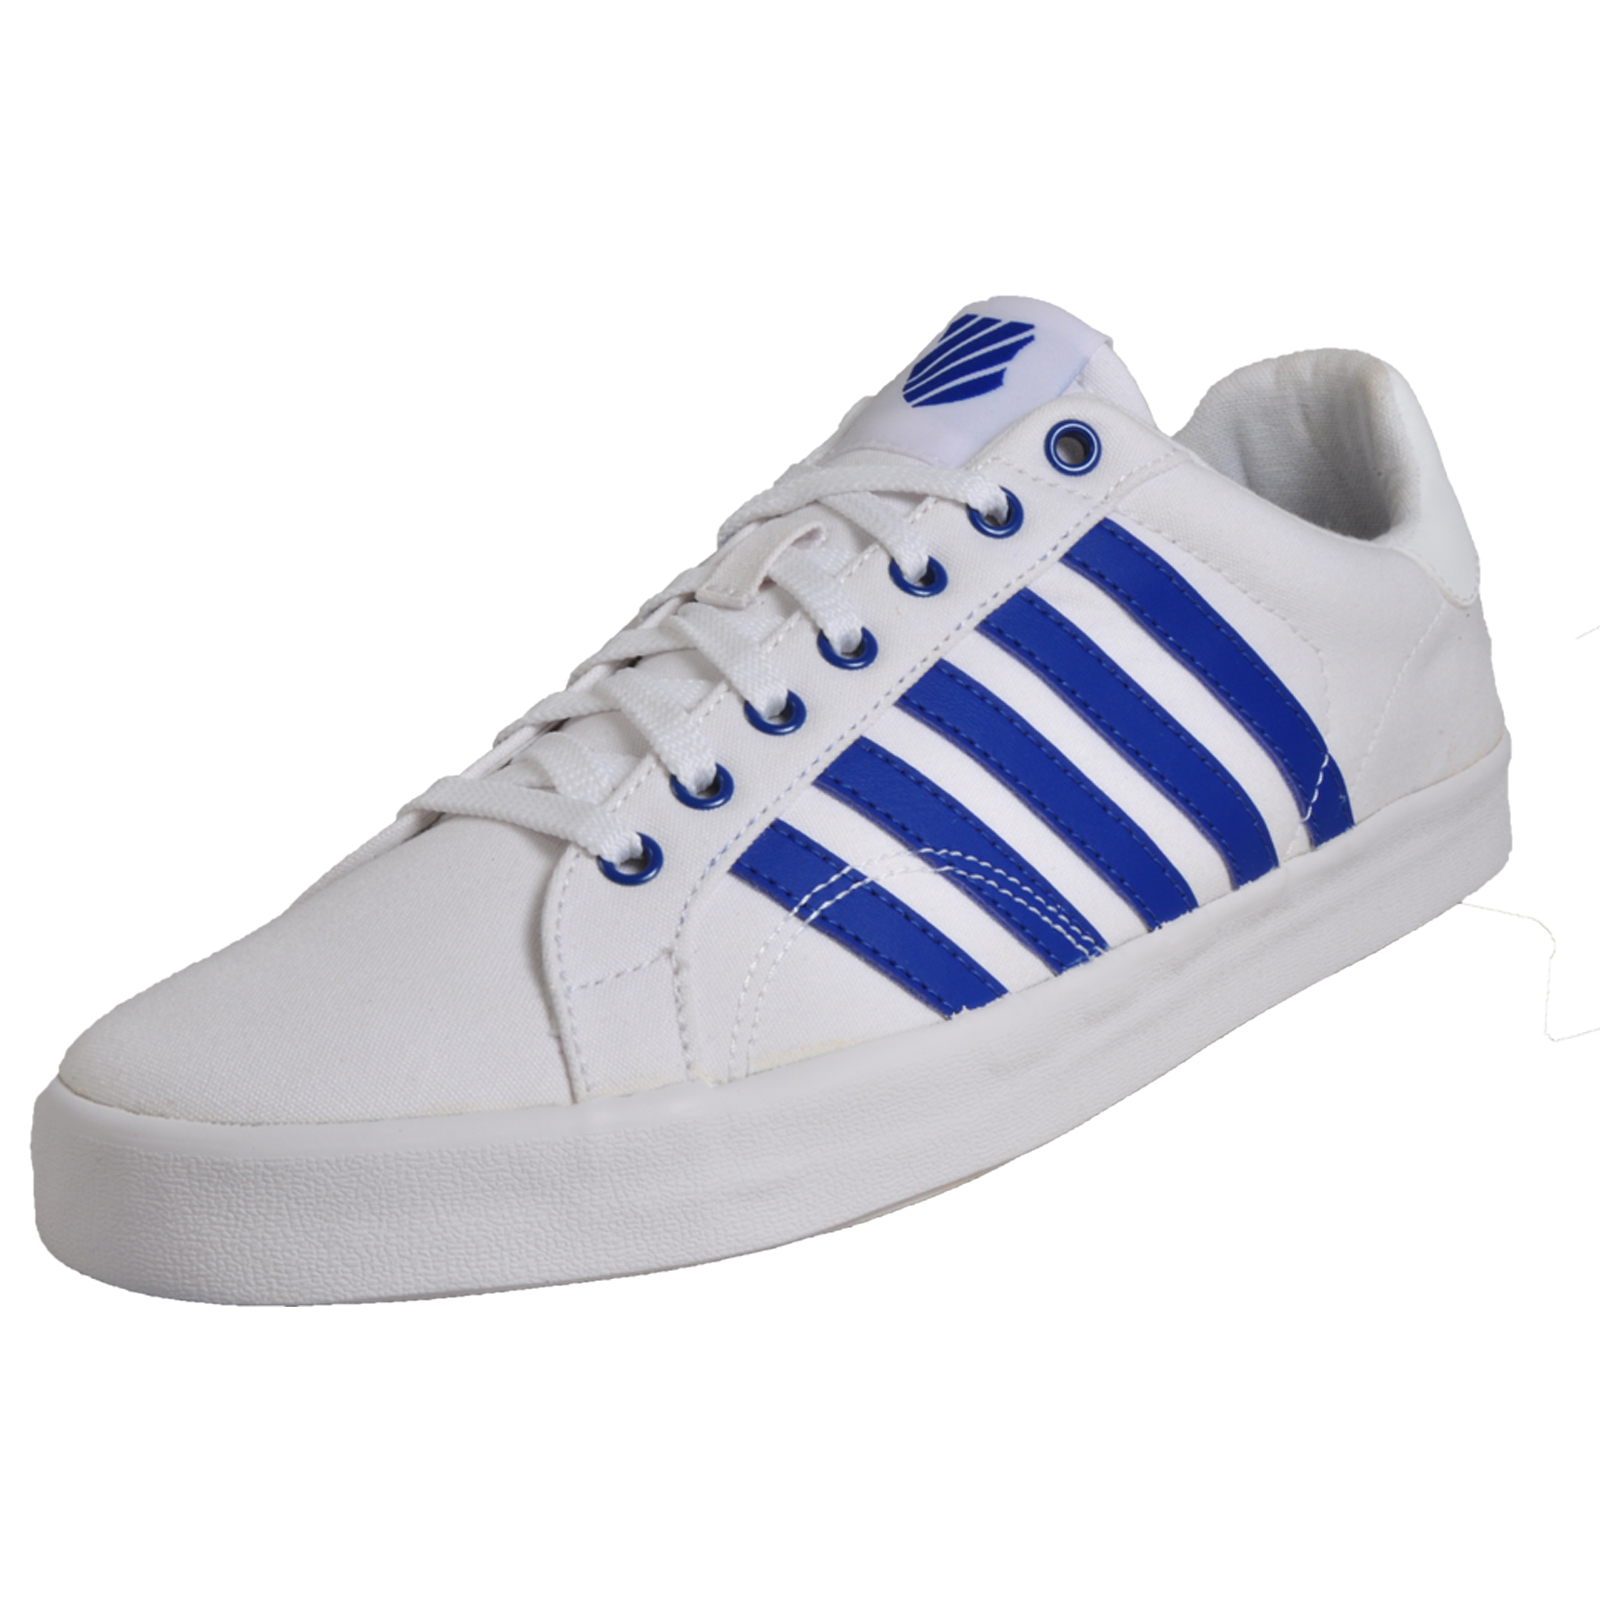 Details about K Swiss Belmont Men s Classic Vintage Retro Trainers Canvas  Sneakers White 3bd20ffe5